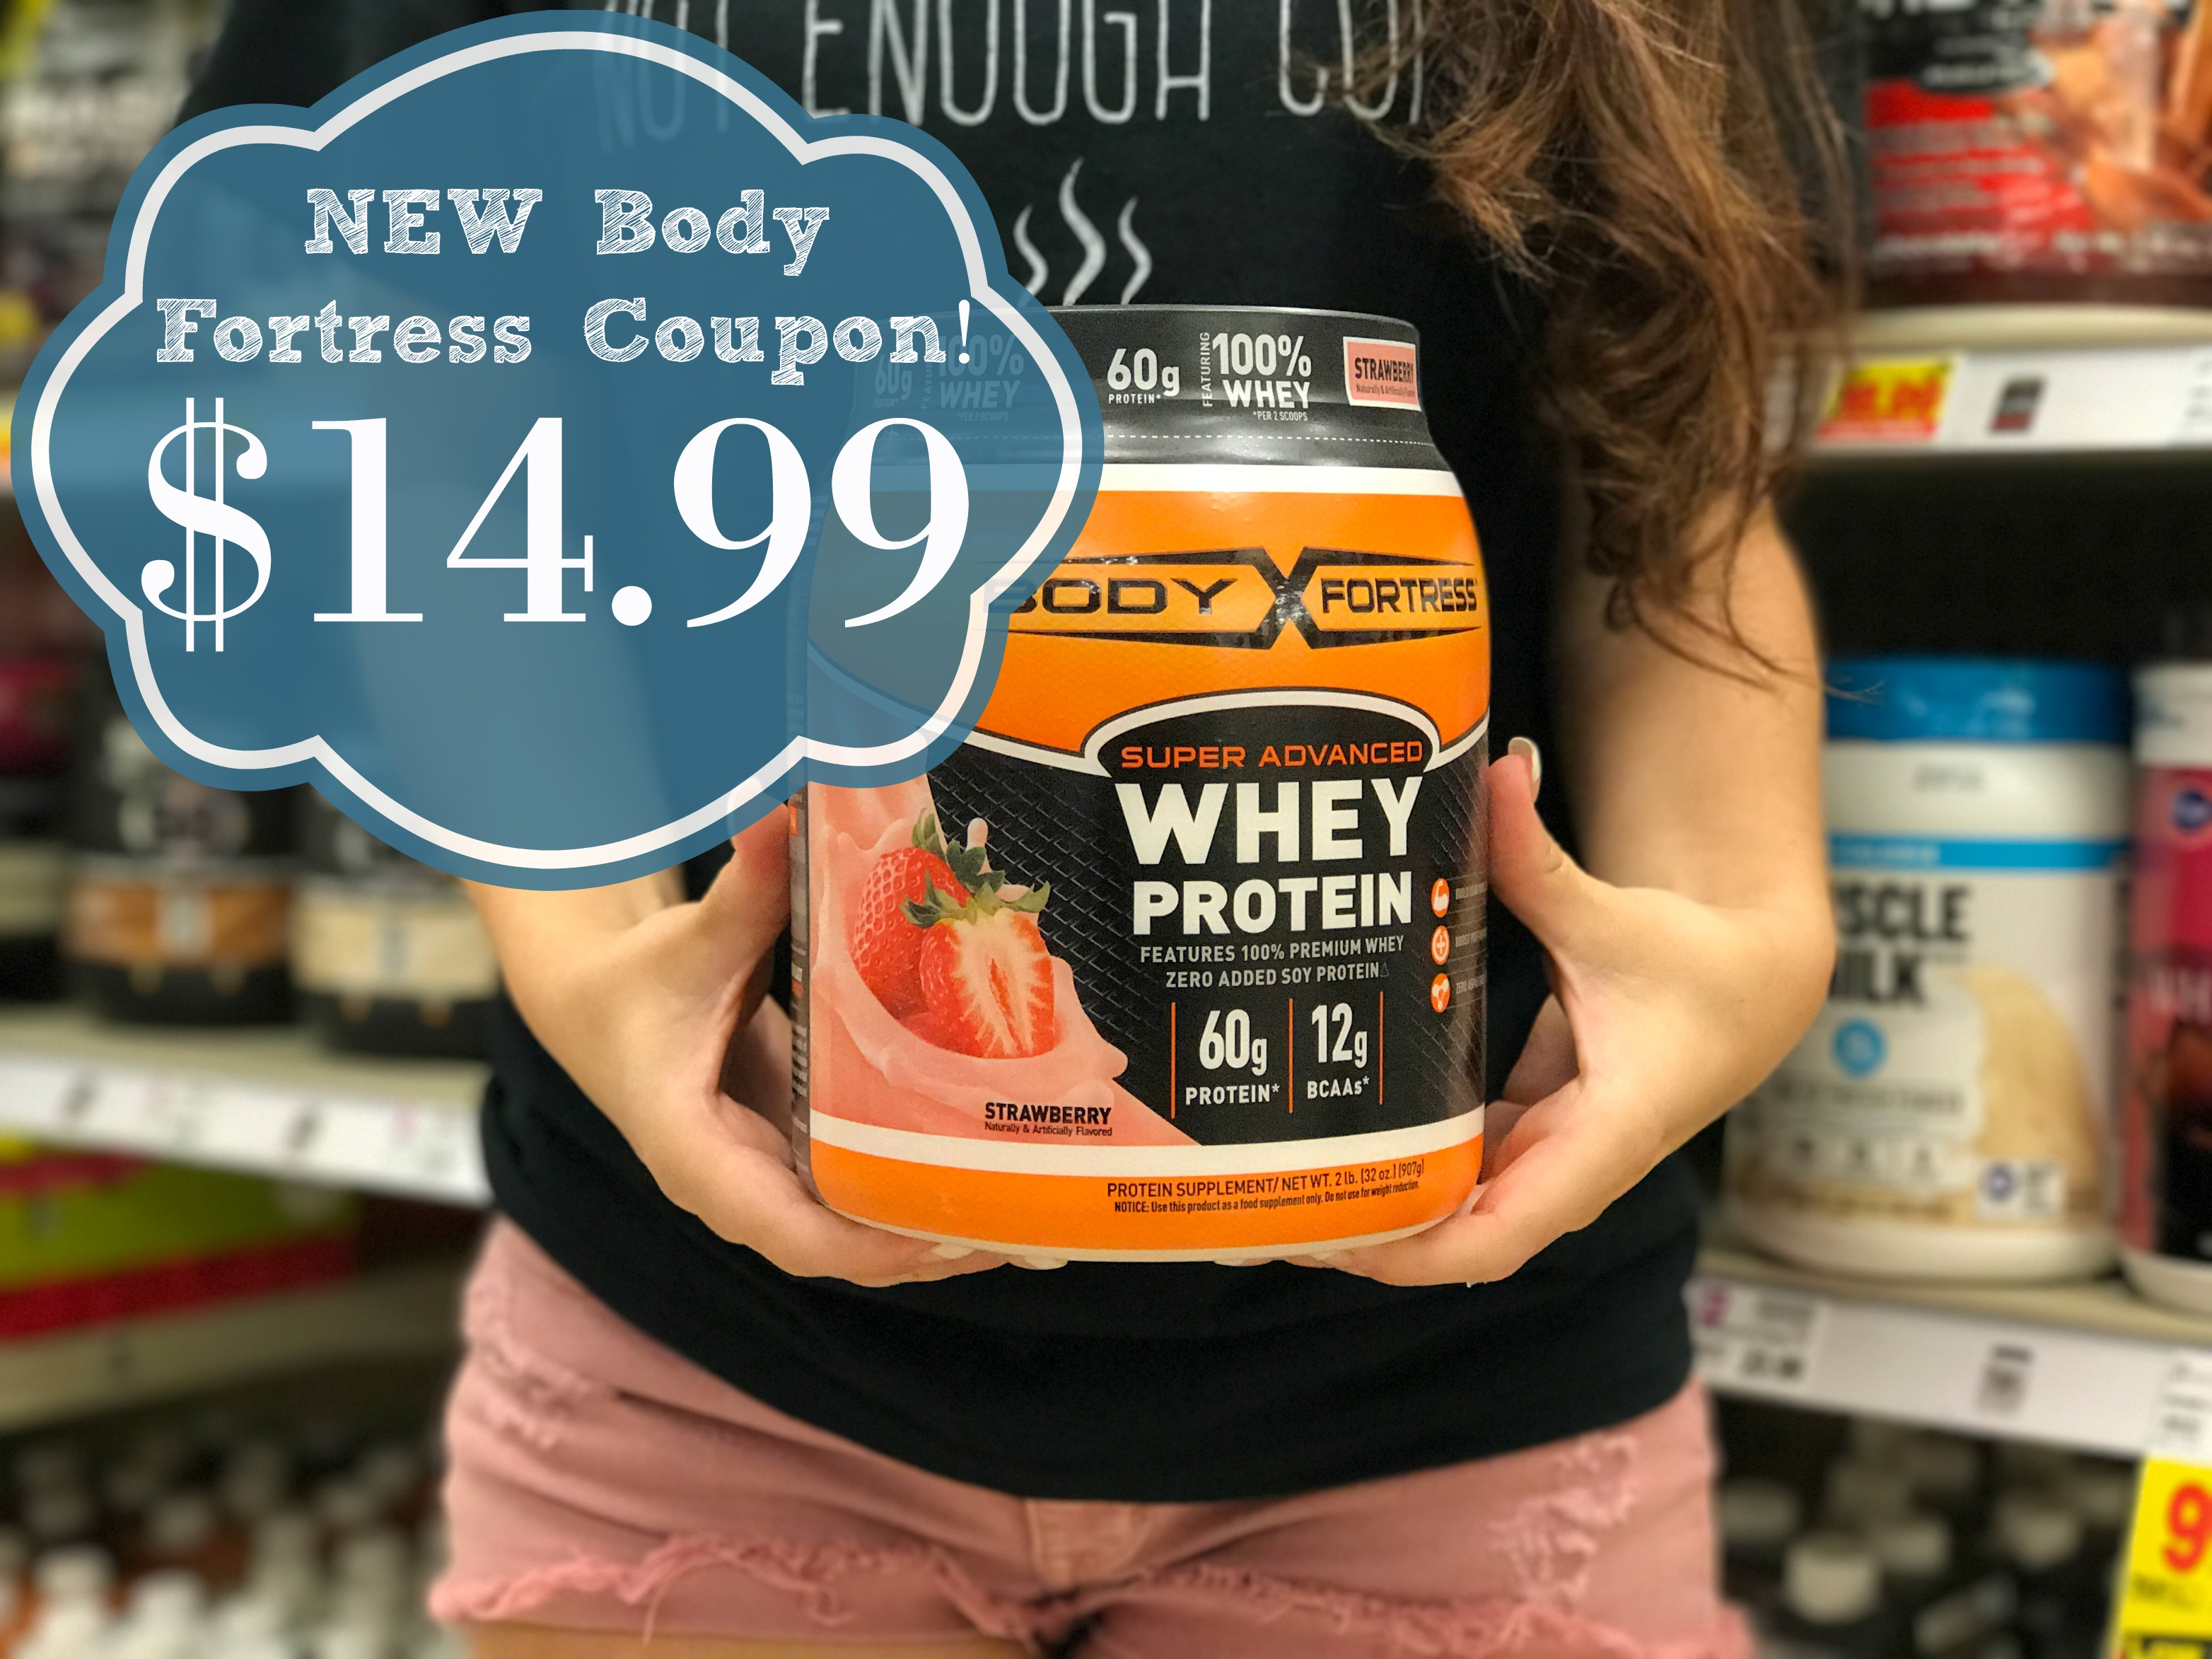 FROM AMERICA'S #1 SELLING BODY BUILDING SUPPLEMENT BRAND - Six Star % Whey Protein Plus is from the makers of MuscleTech, so you know it's a premium formula you can trust.